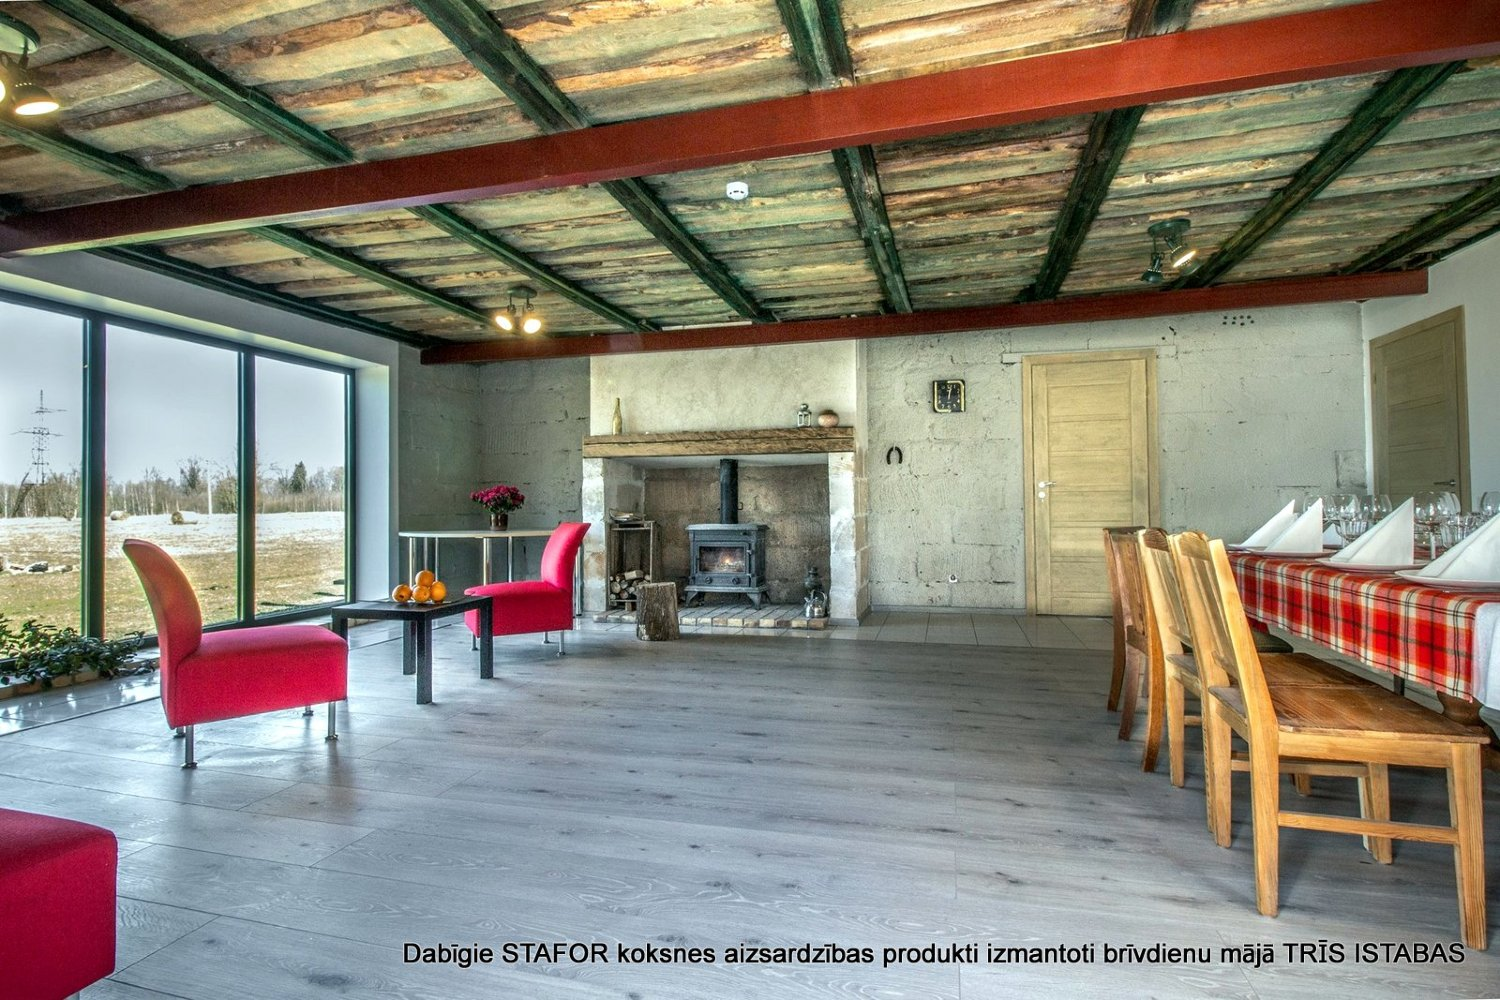 Linseed paint - stain NATURA green used for ceiling elements